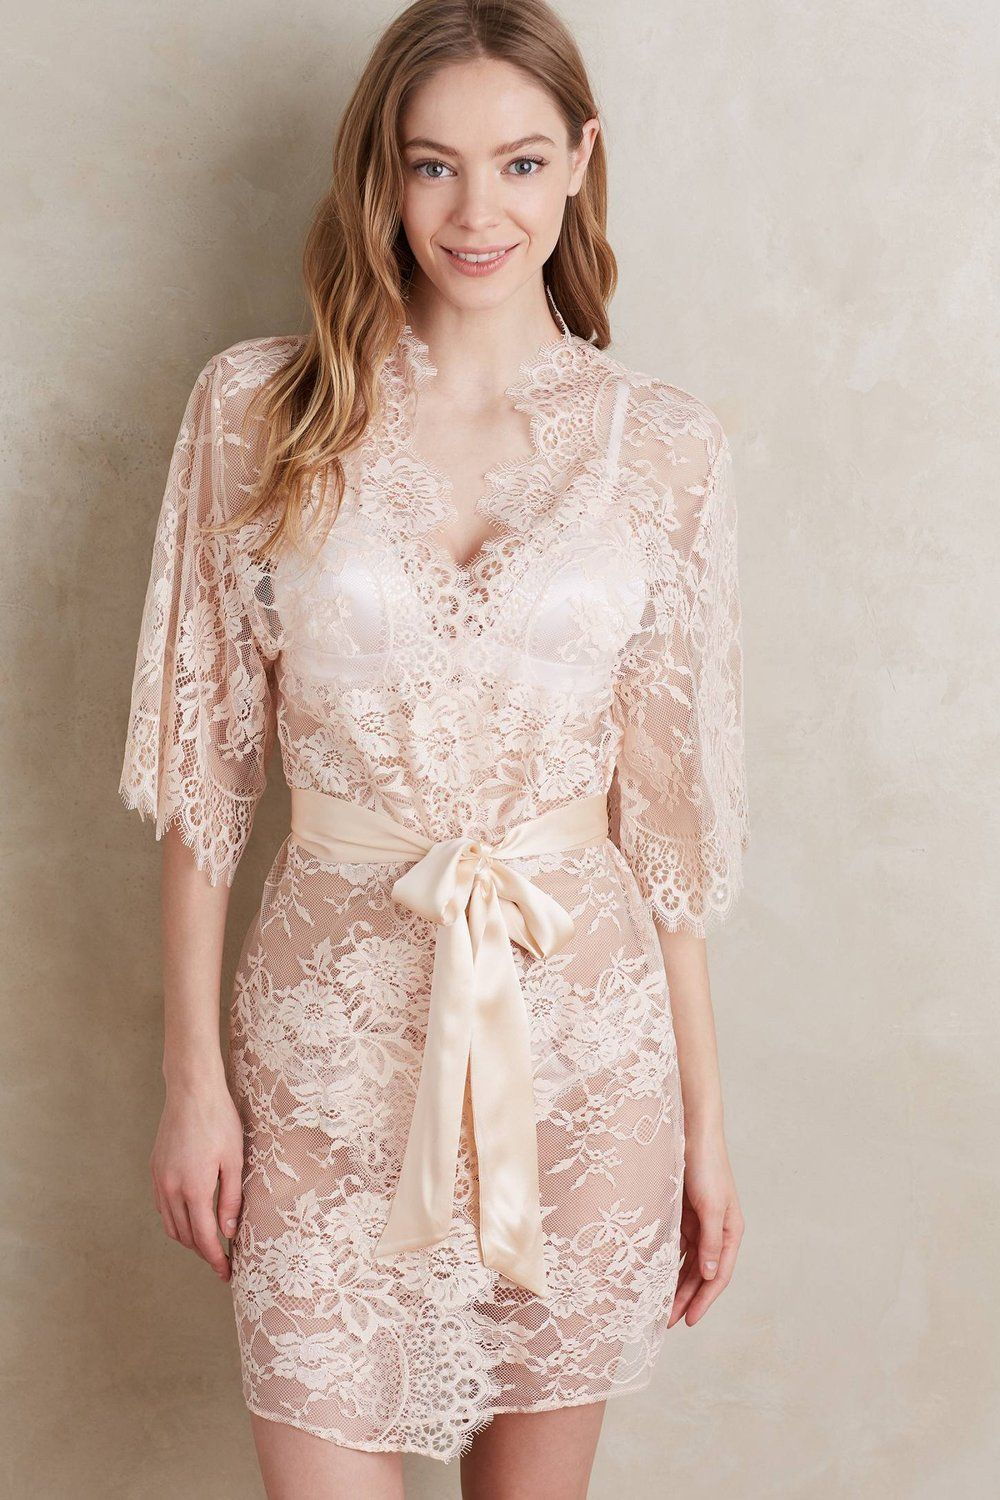 Girl aSeriousDream for Anthropologie Swan Queen lace robe in blush pink -  style 102 3fac68e29